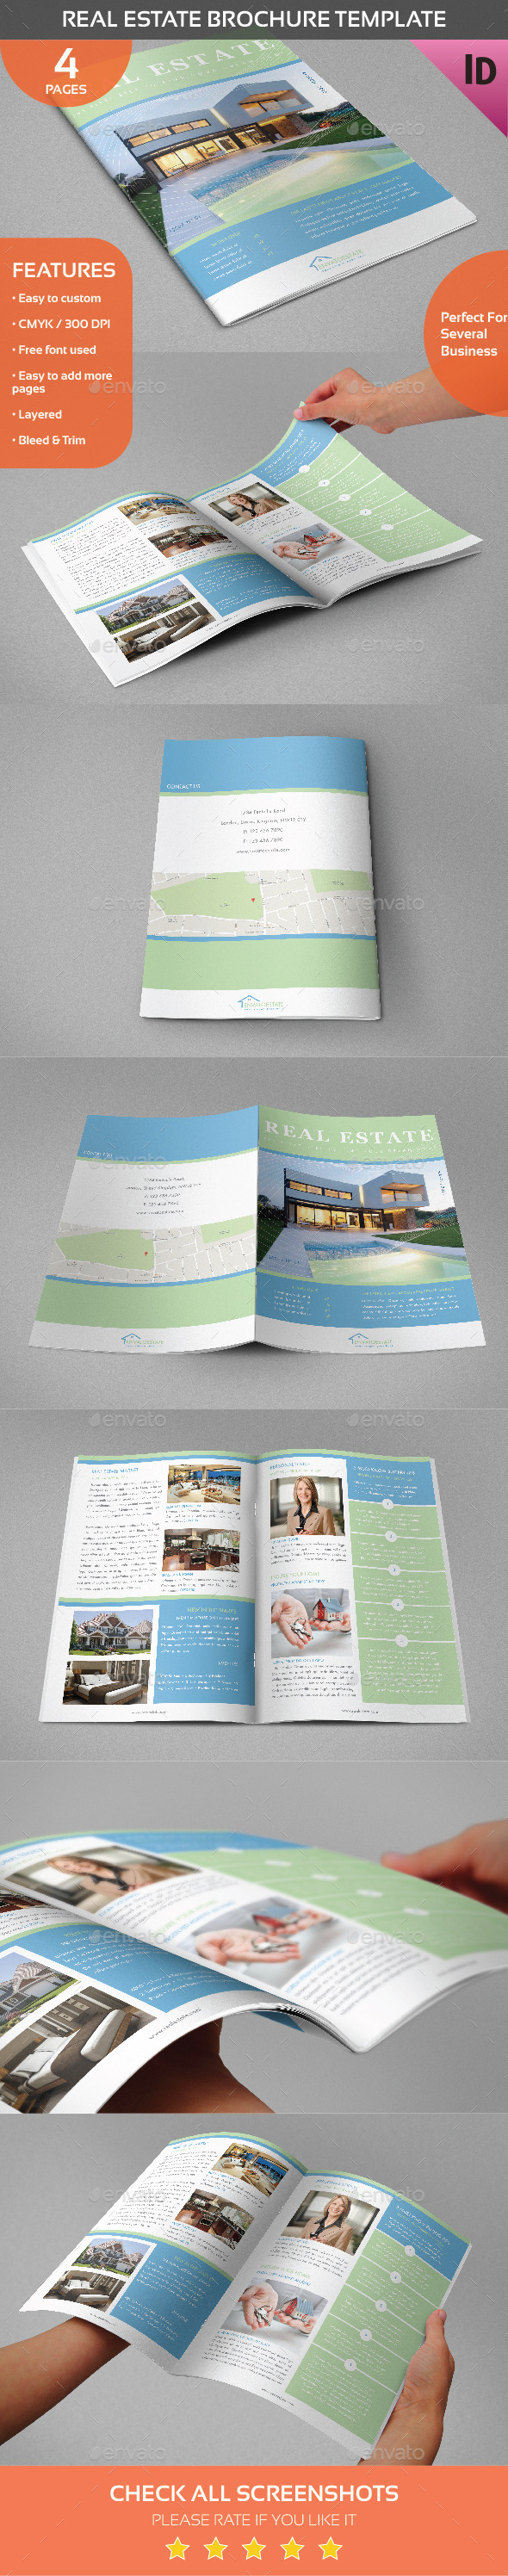 GraphicRiver Real Estate Brochure Template 11004611